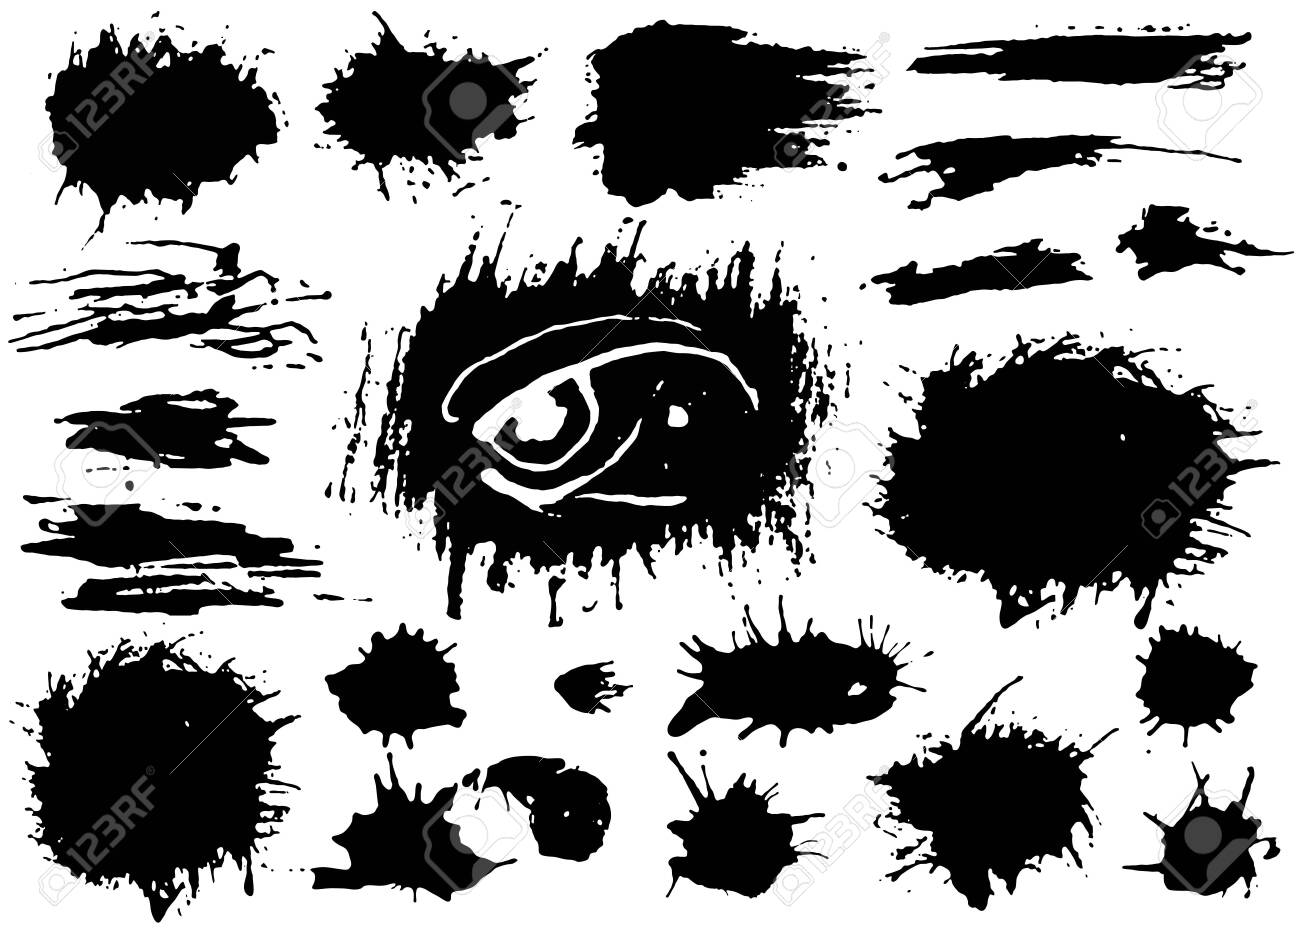 Set of black paint, ink brush strokes, brushes, lines. Dirty artistic grunge design elements. Vector - 135993816